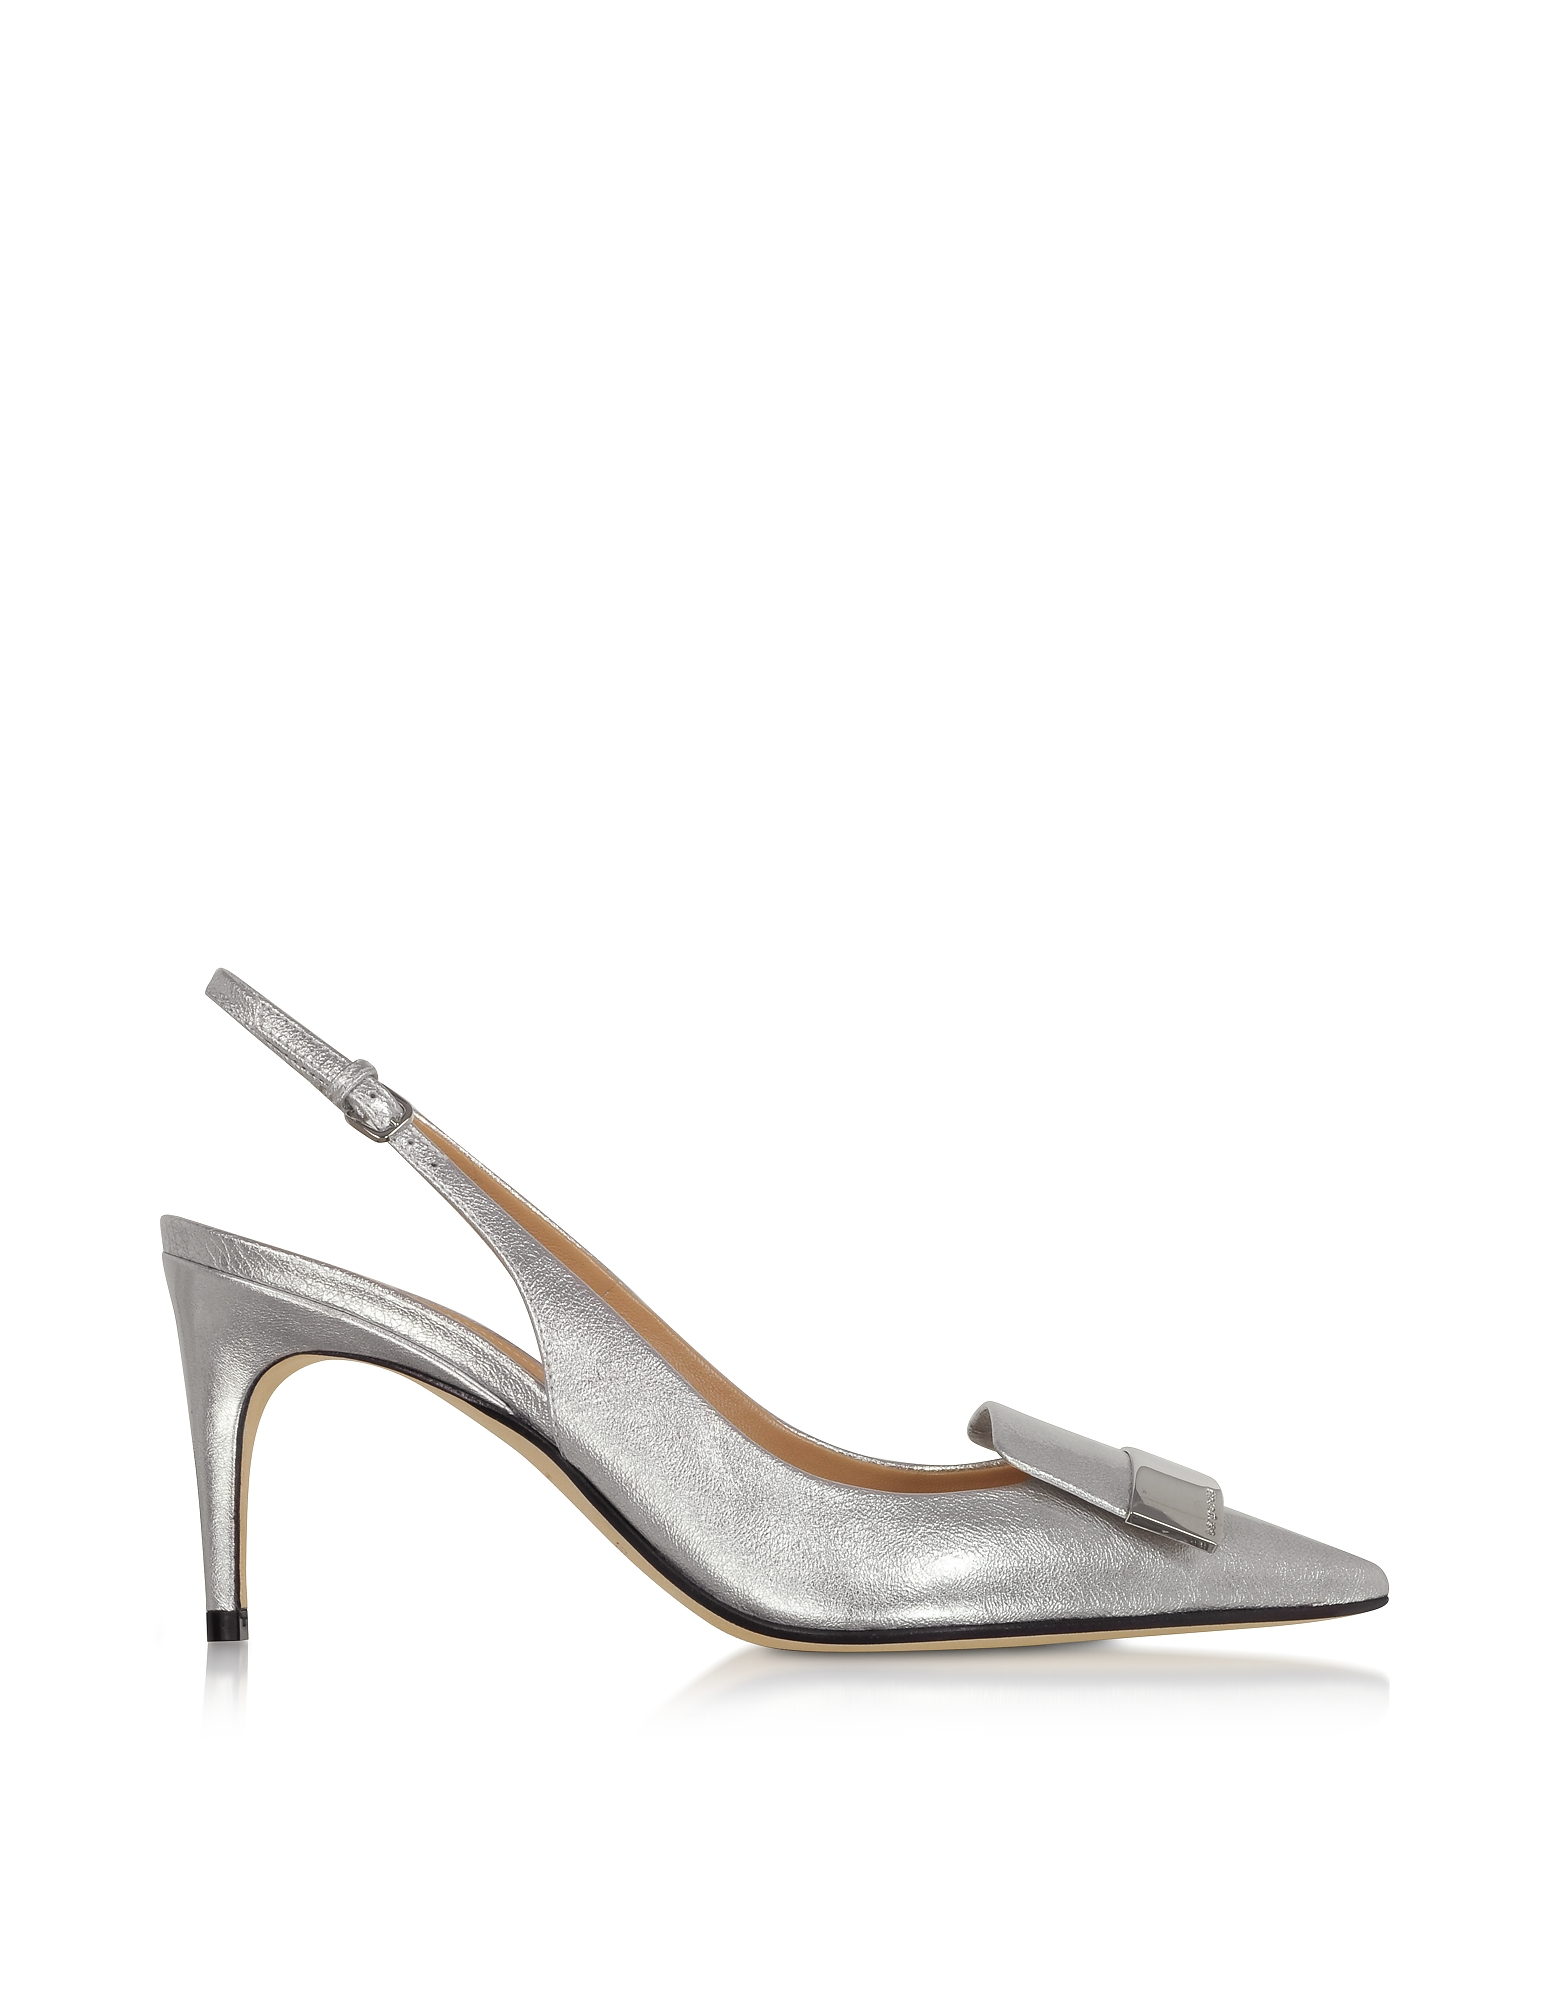 Sergio Rossi Designer Shoes, Silver Glacee Mid-heel Slingback Pumps